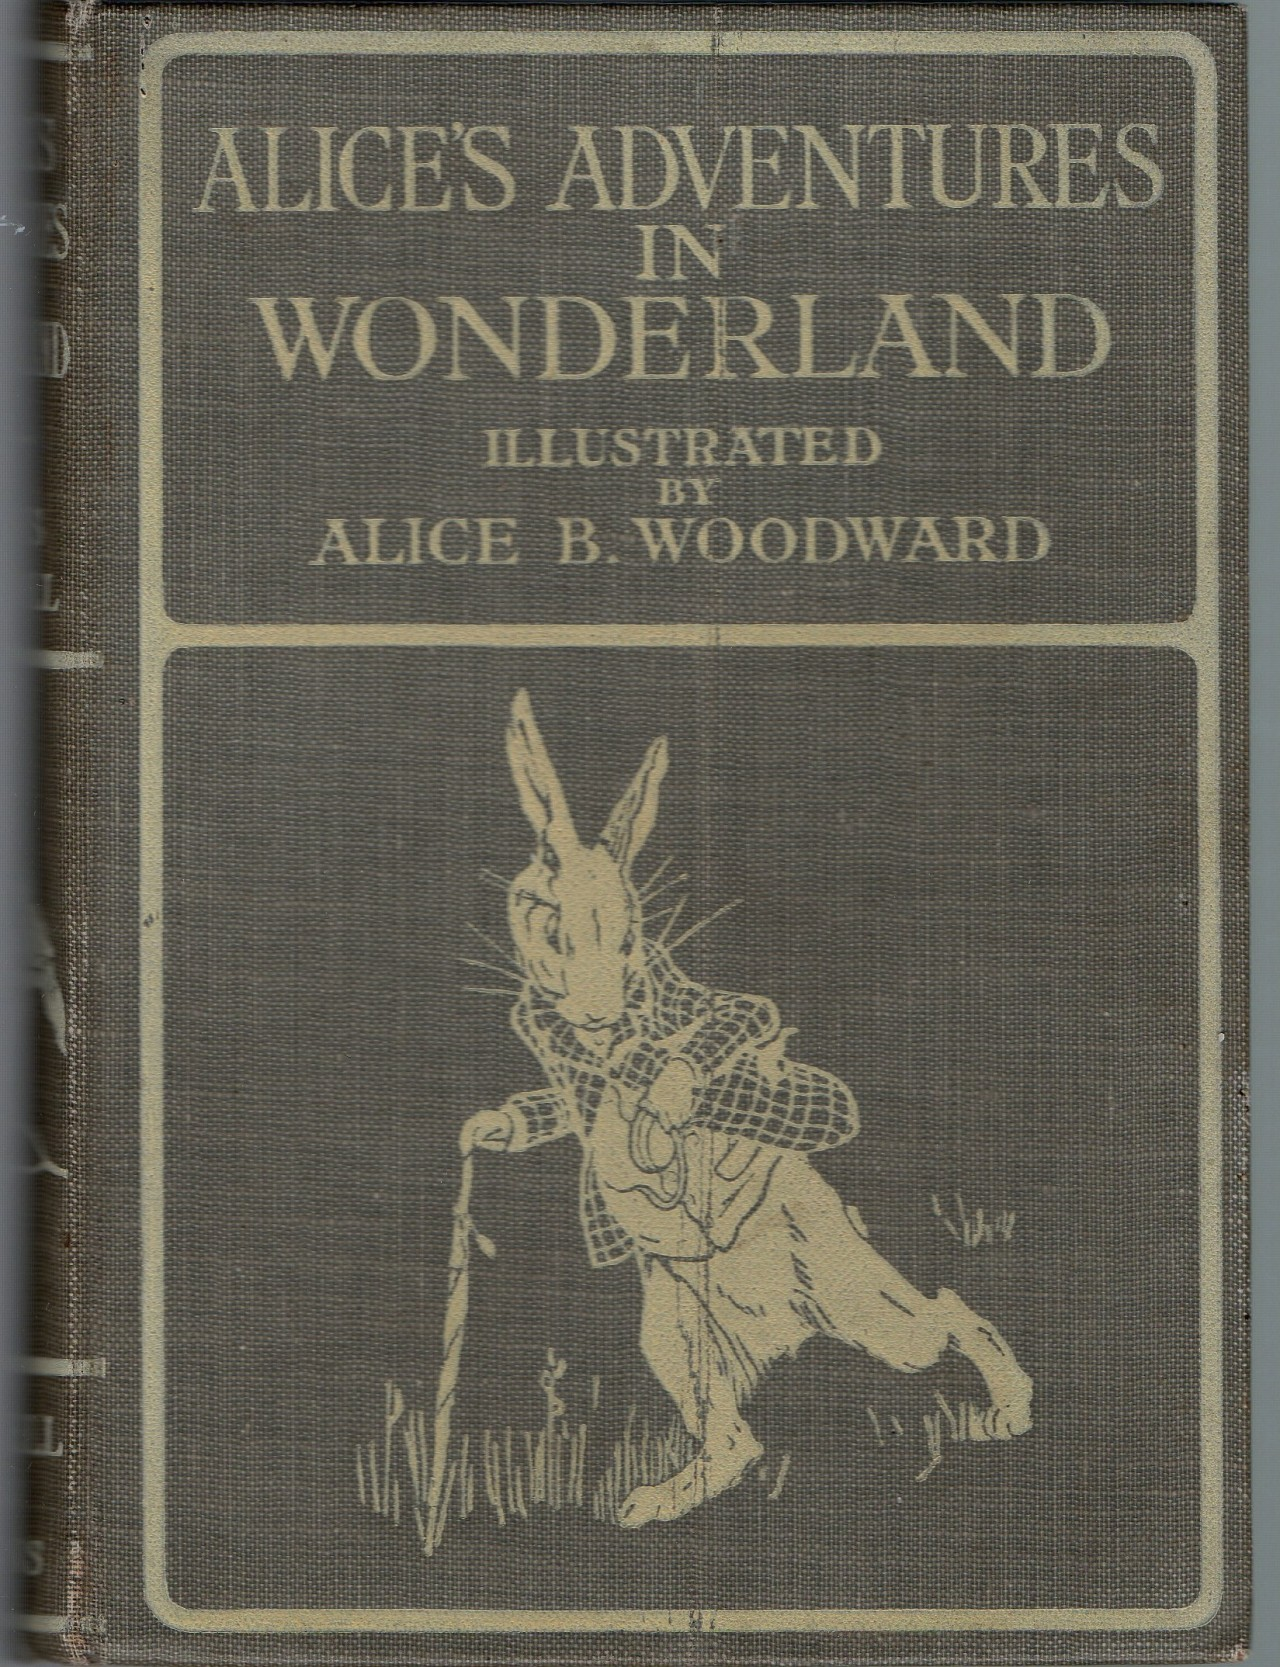 decadentiacoprofaga:  Alice B. Woodward cover for Alice's Adventures in Wonderland, published by Bell, 1913. Source.